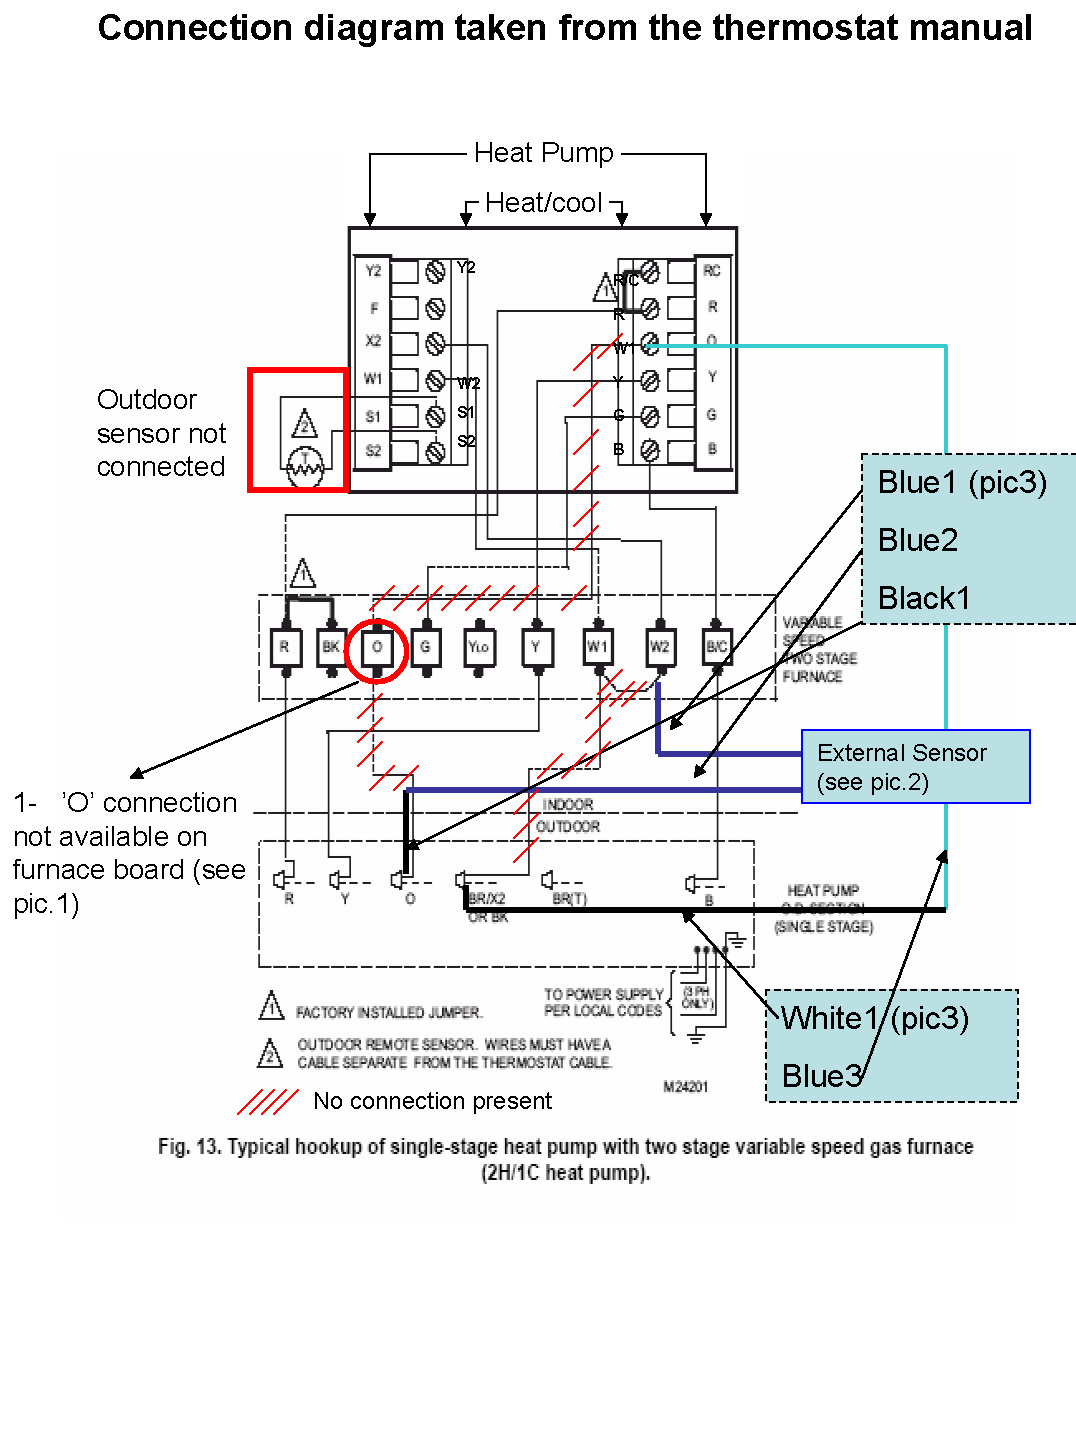 Trane Furnace Wiring - Data Wiring Diagram Today - Nest Wiring Diagram For Heat Pump Two Stage Heat One Stage Cooling